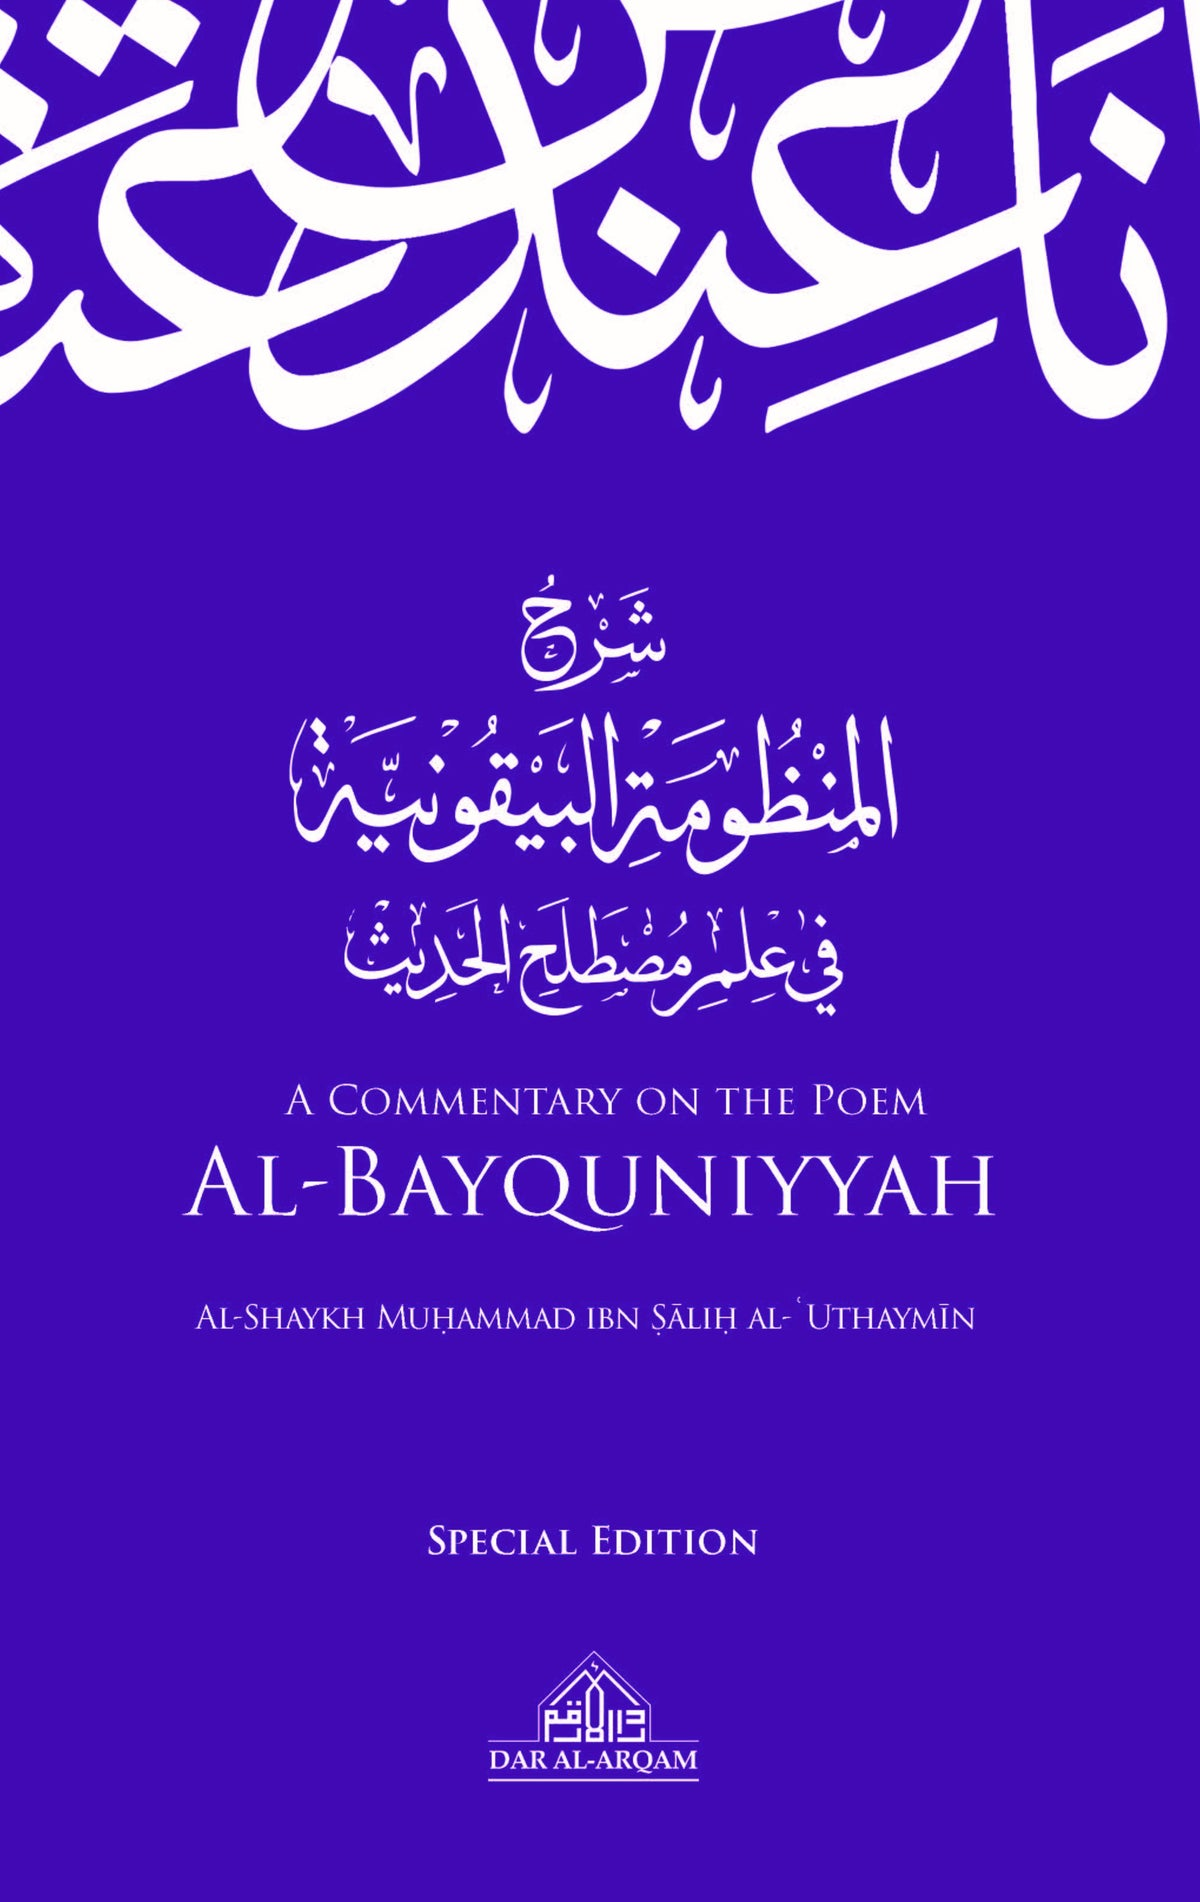 Image of A Commentary on the Poem al-Bayquniyyah